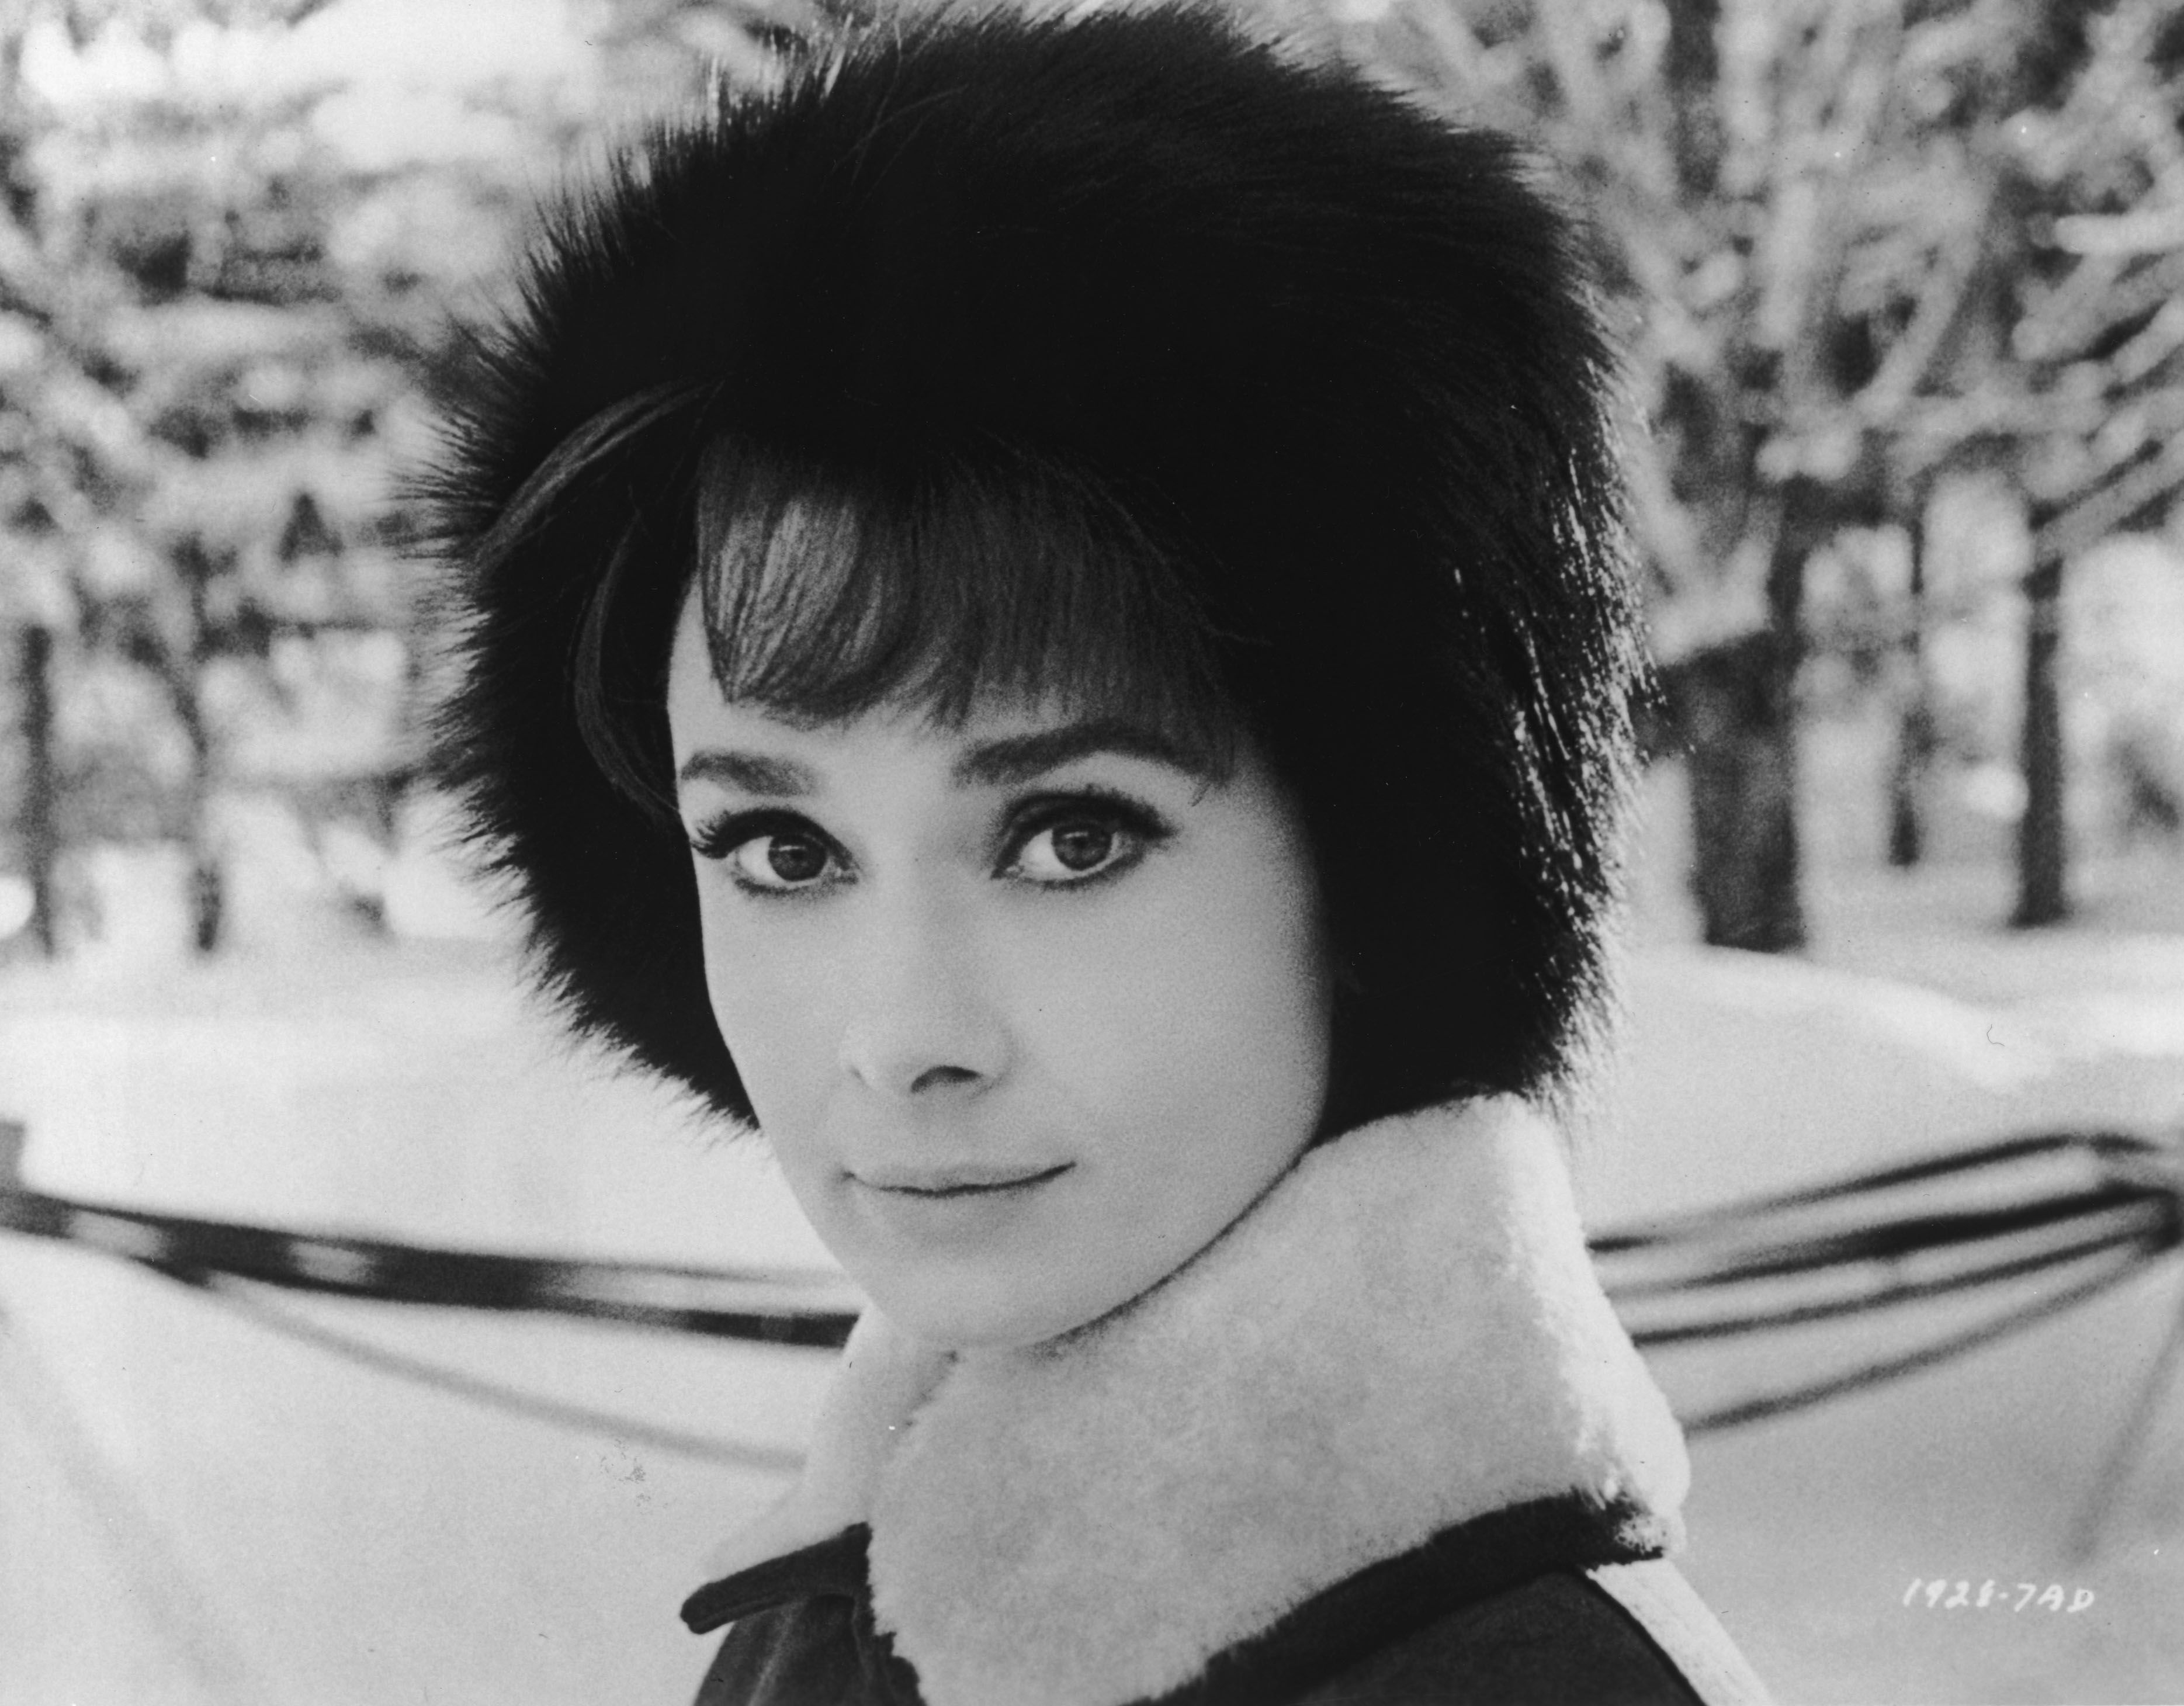 A must-see Audrey Hepburn documentary ...